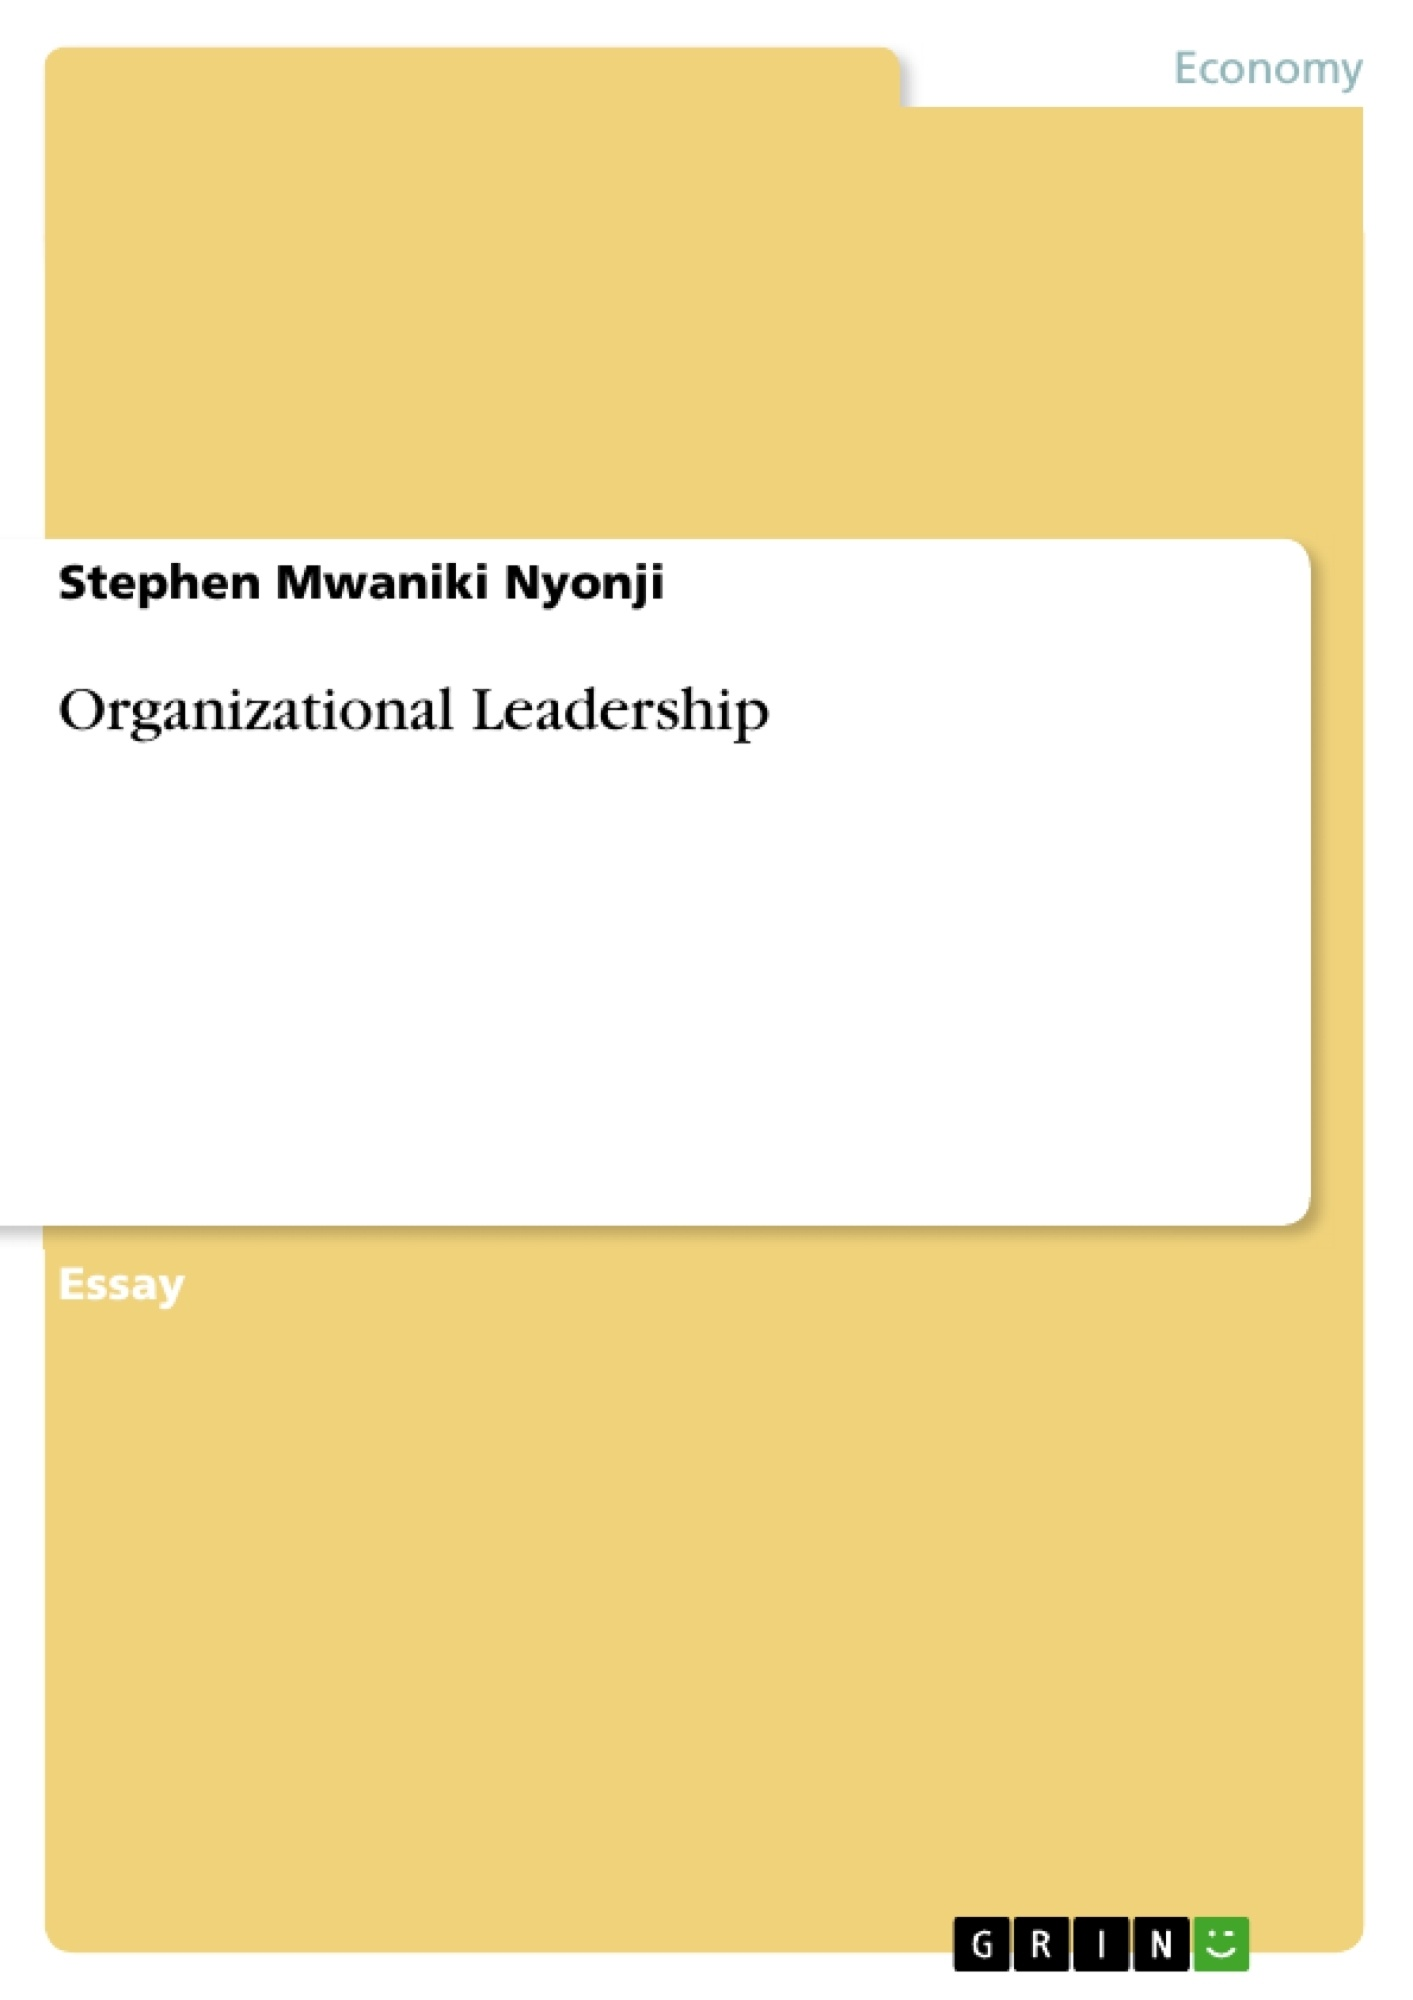 Organization thesis paper